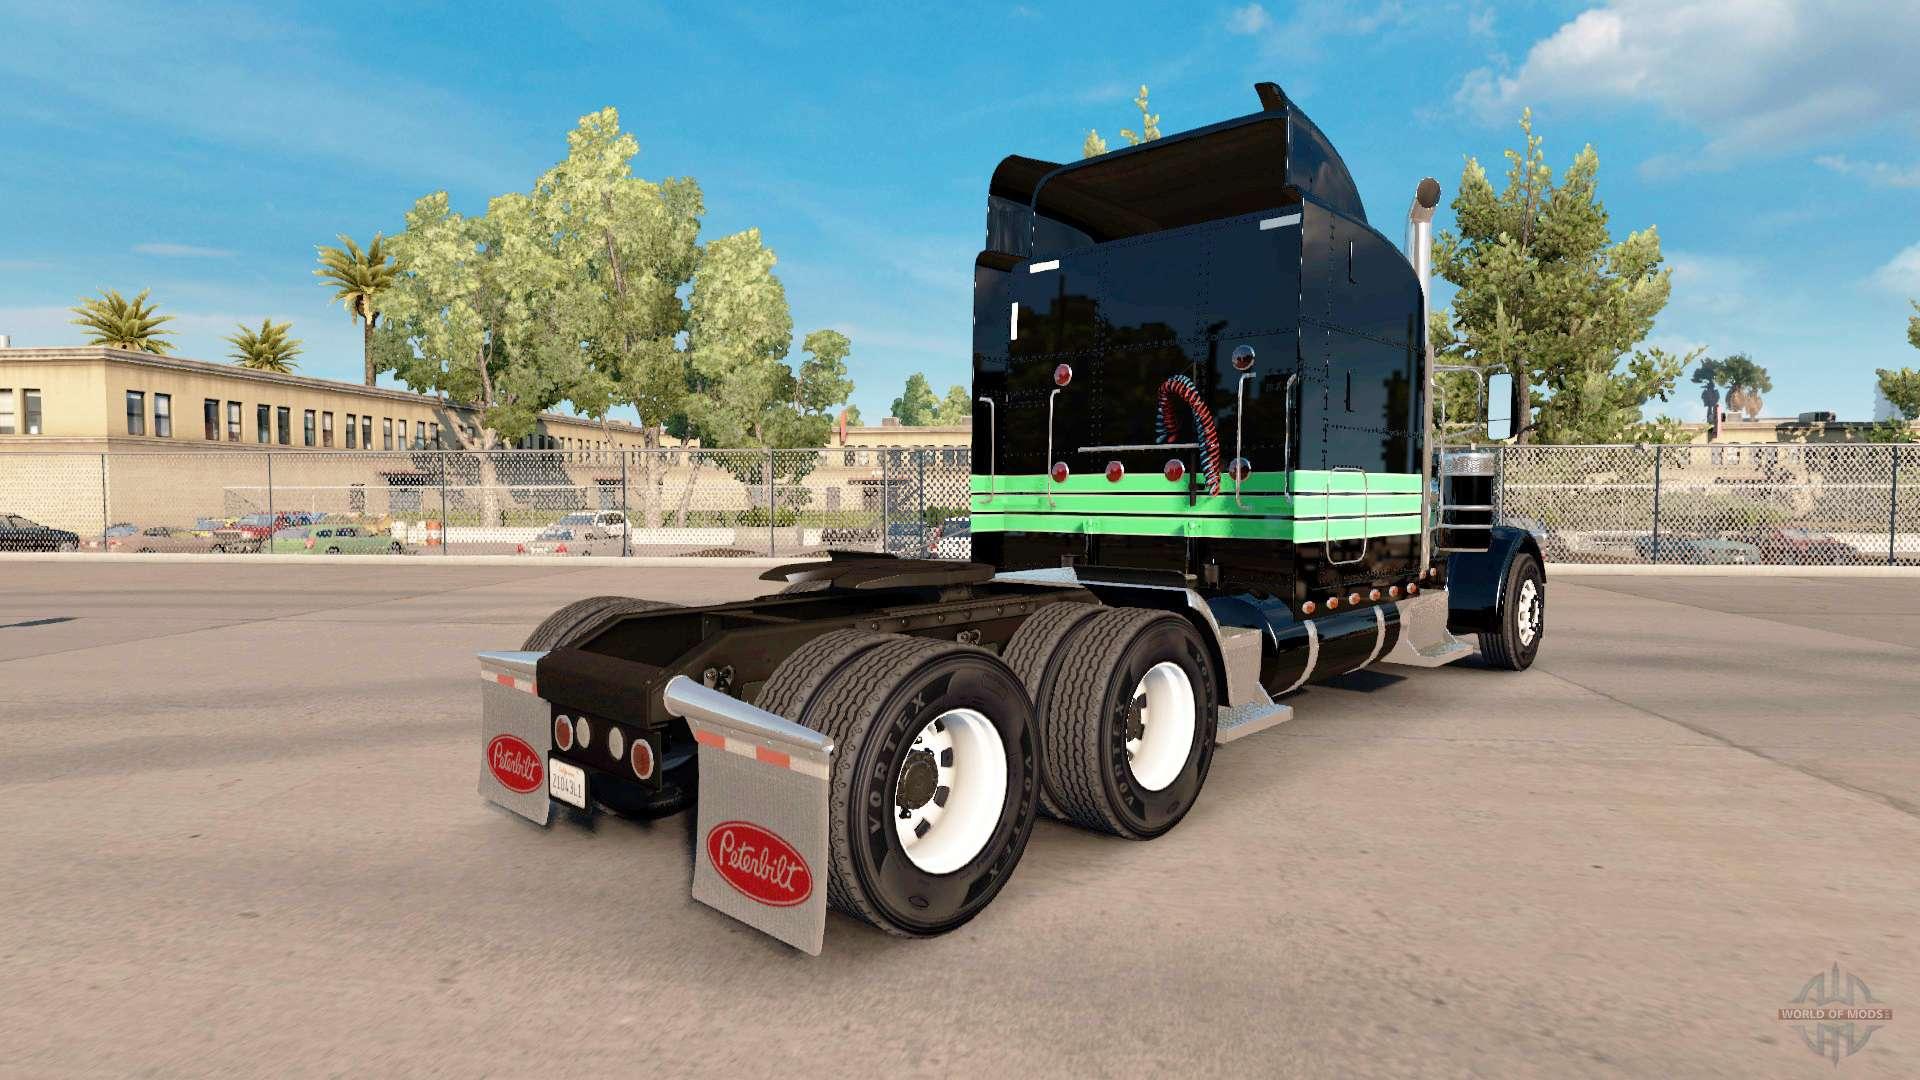 Skin Mint Green And Black For The Truck Peterbilt 389 For American Truck Simulator